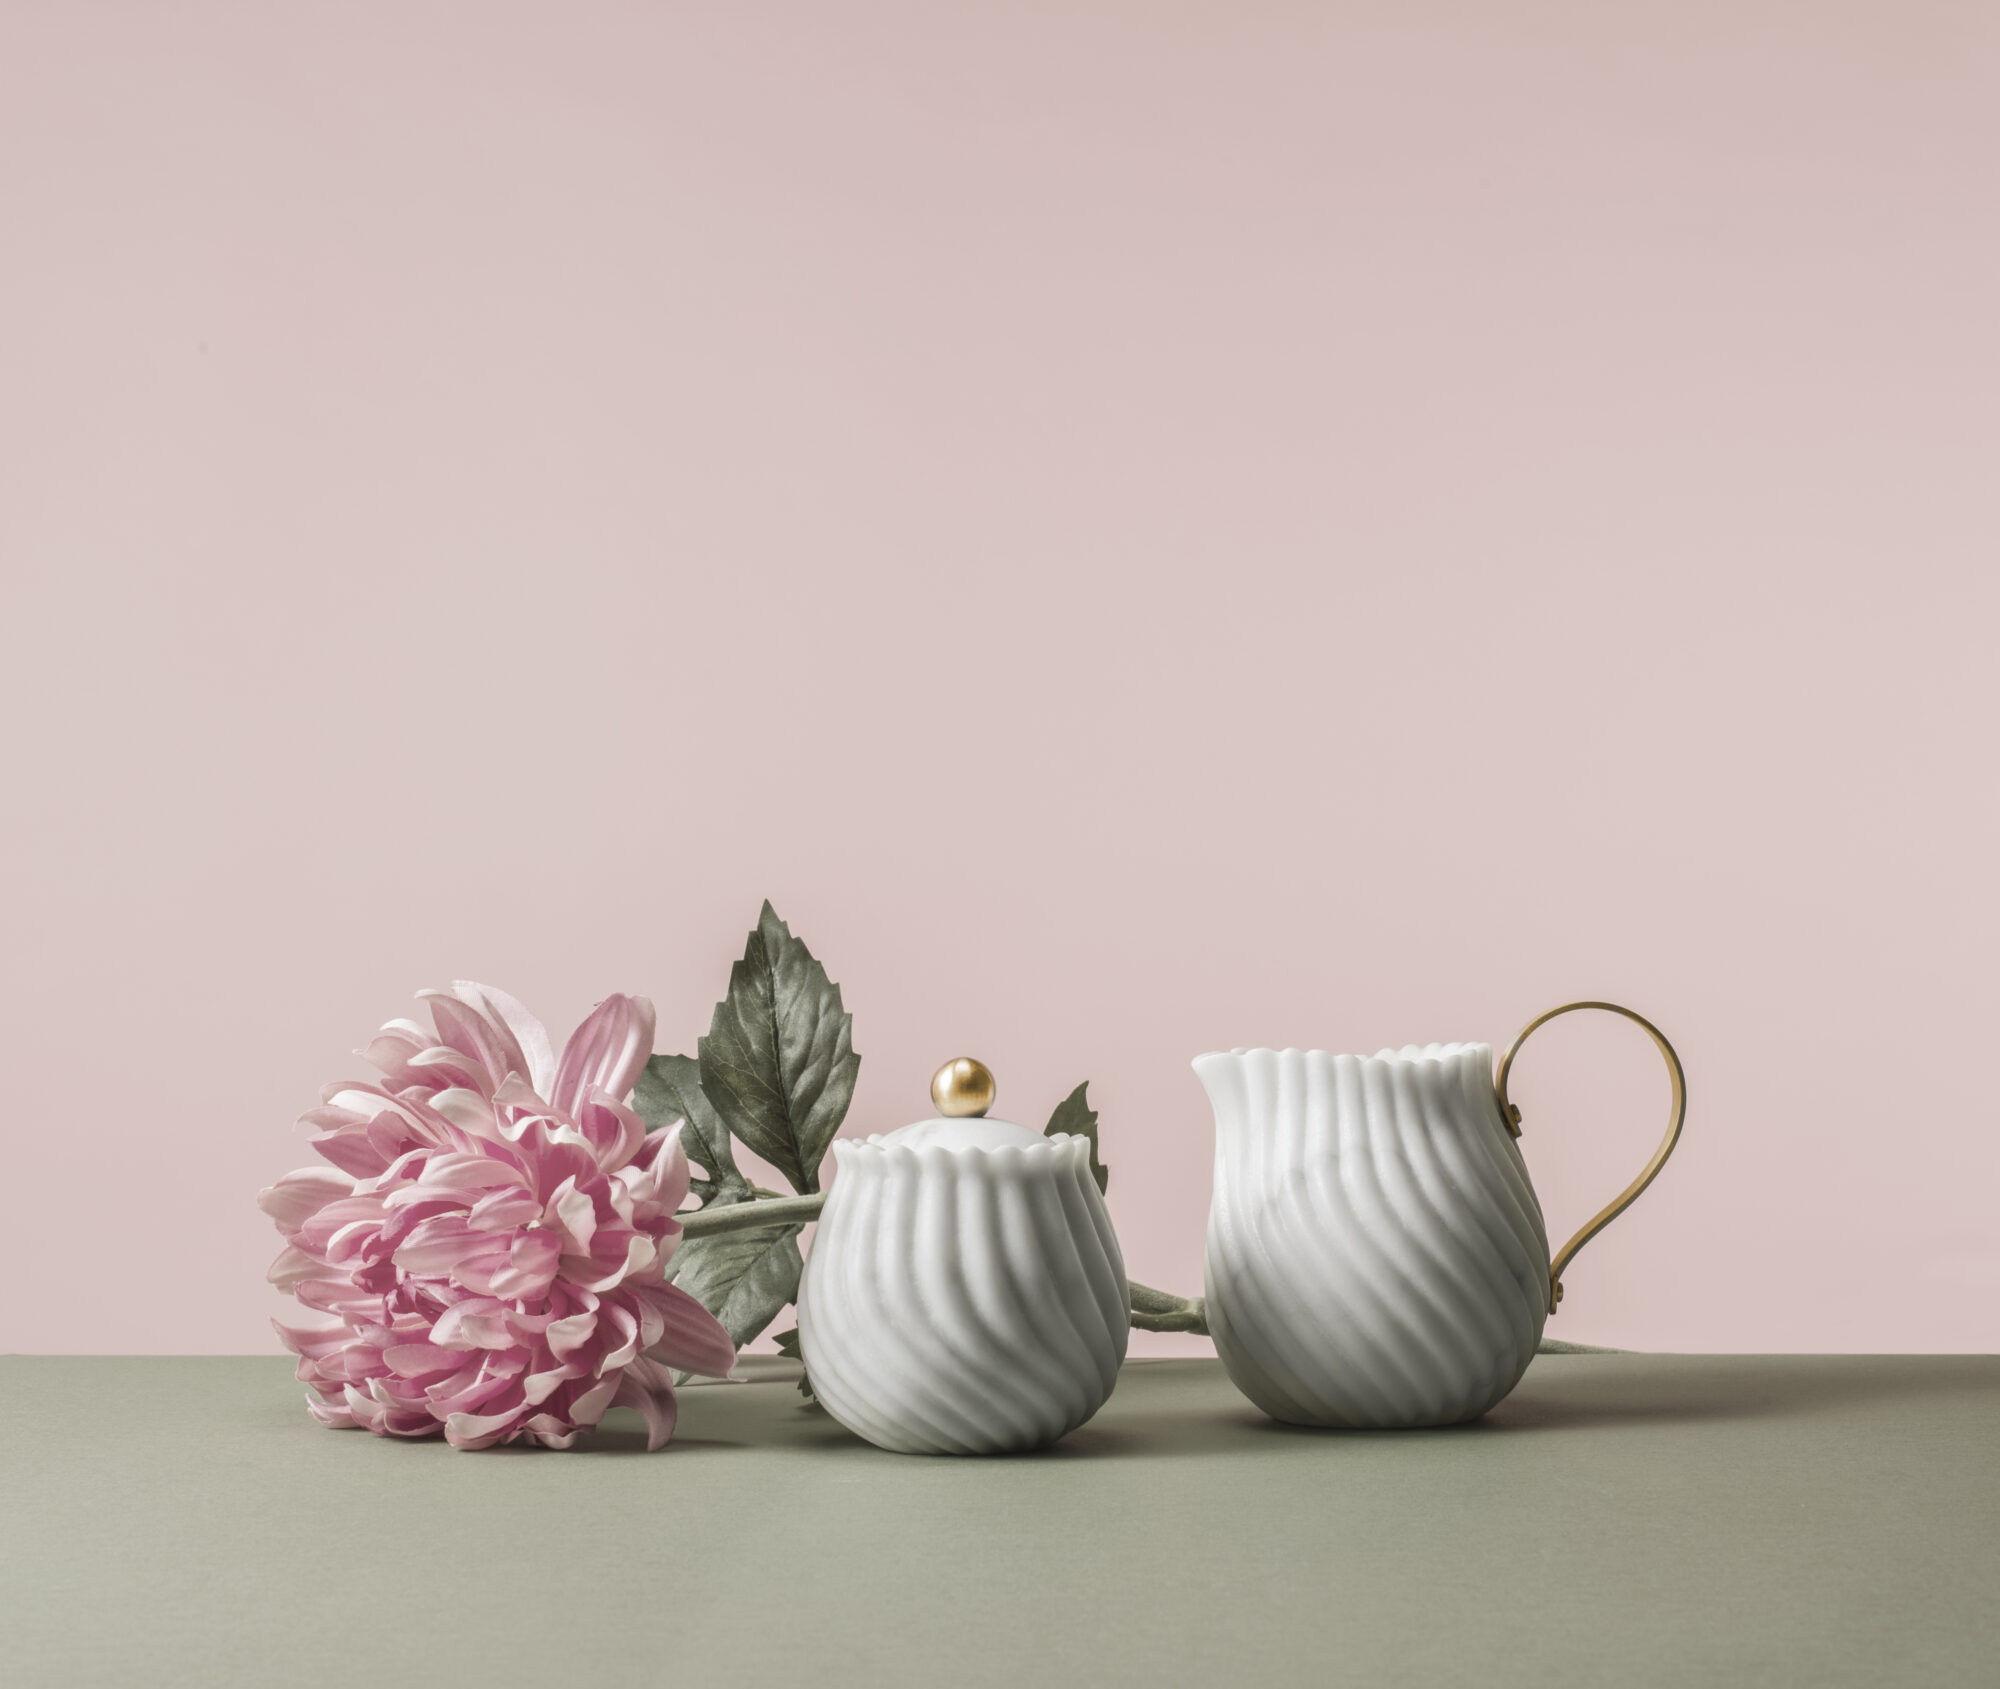 Sugar Bowl and Milk Jug from Victoria Complete Tea Set By Bethan Gray by Editions Milano, $9,970, Marble and Brass